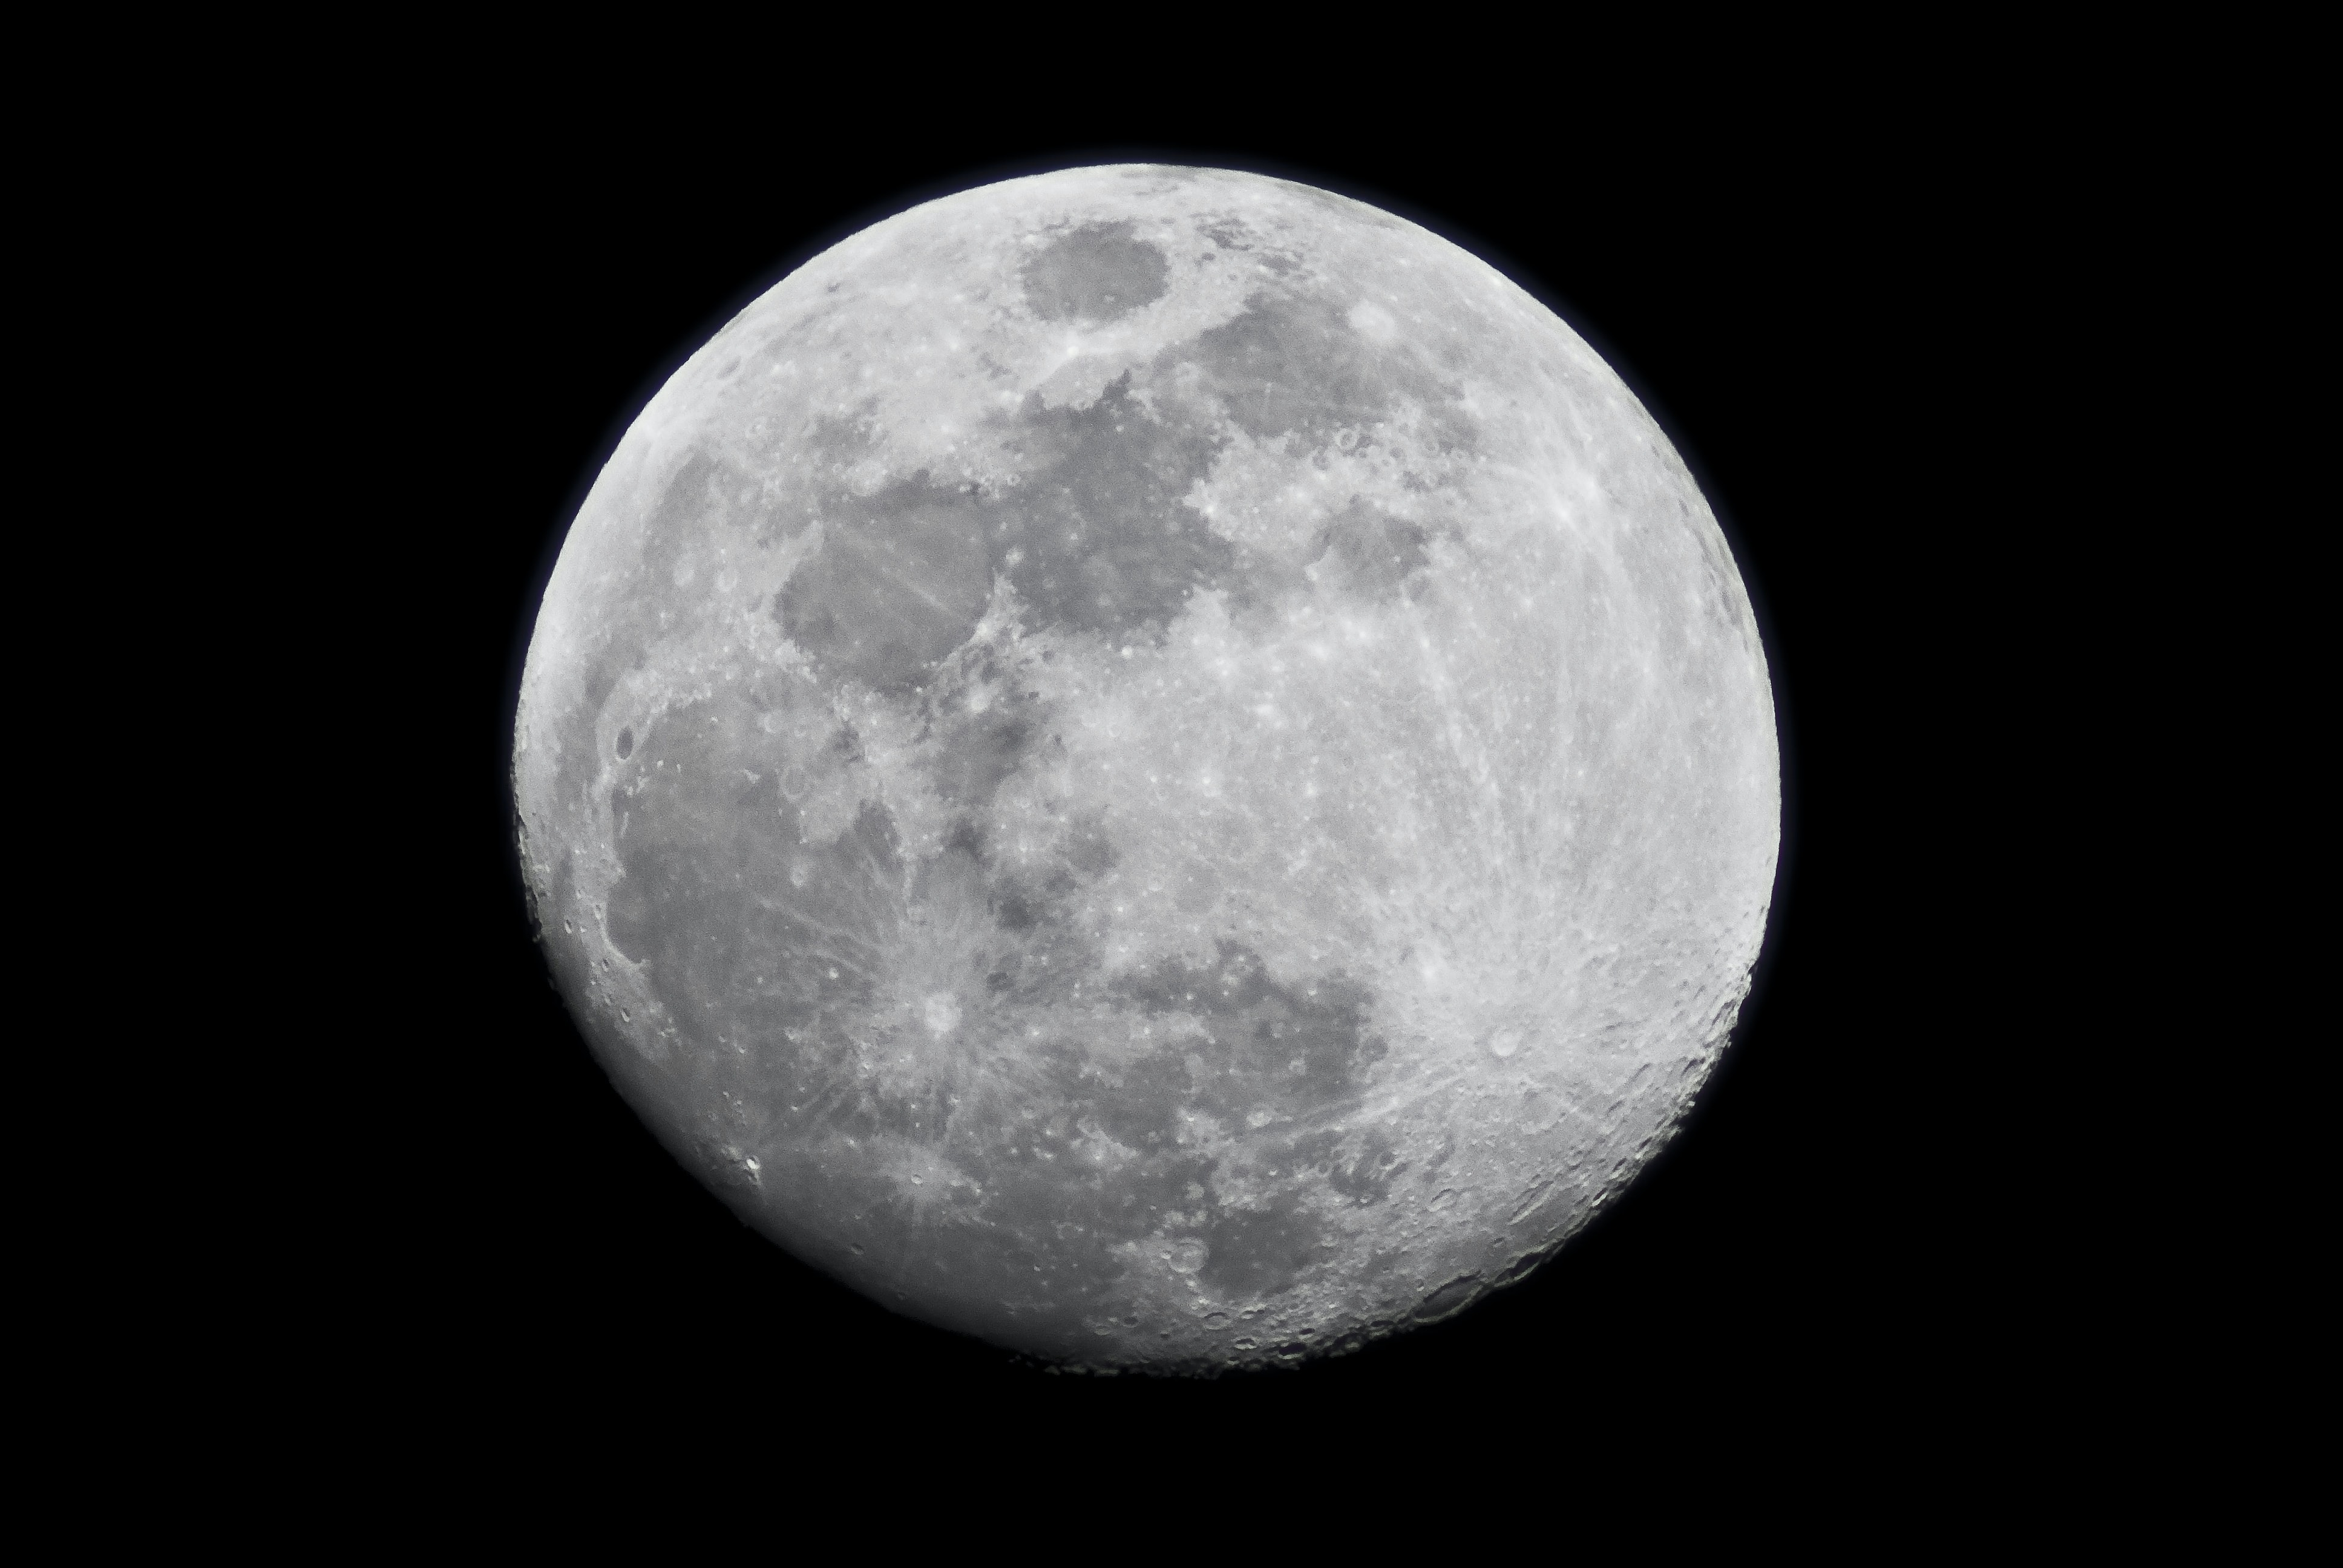 The moon and craters